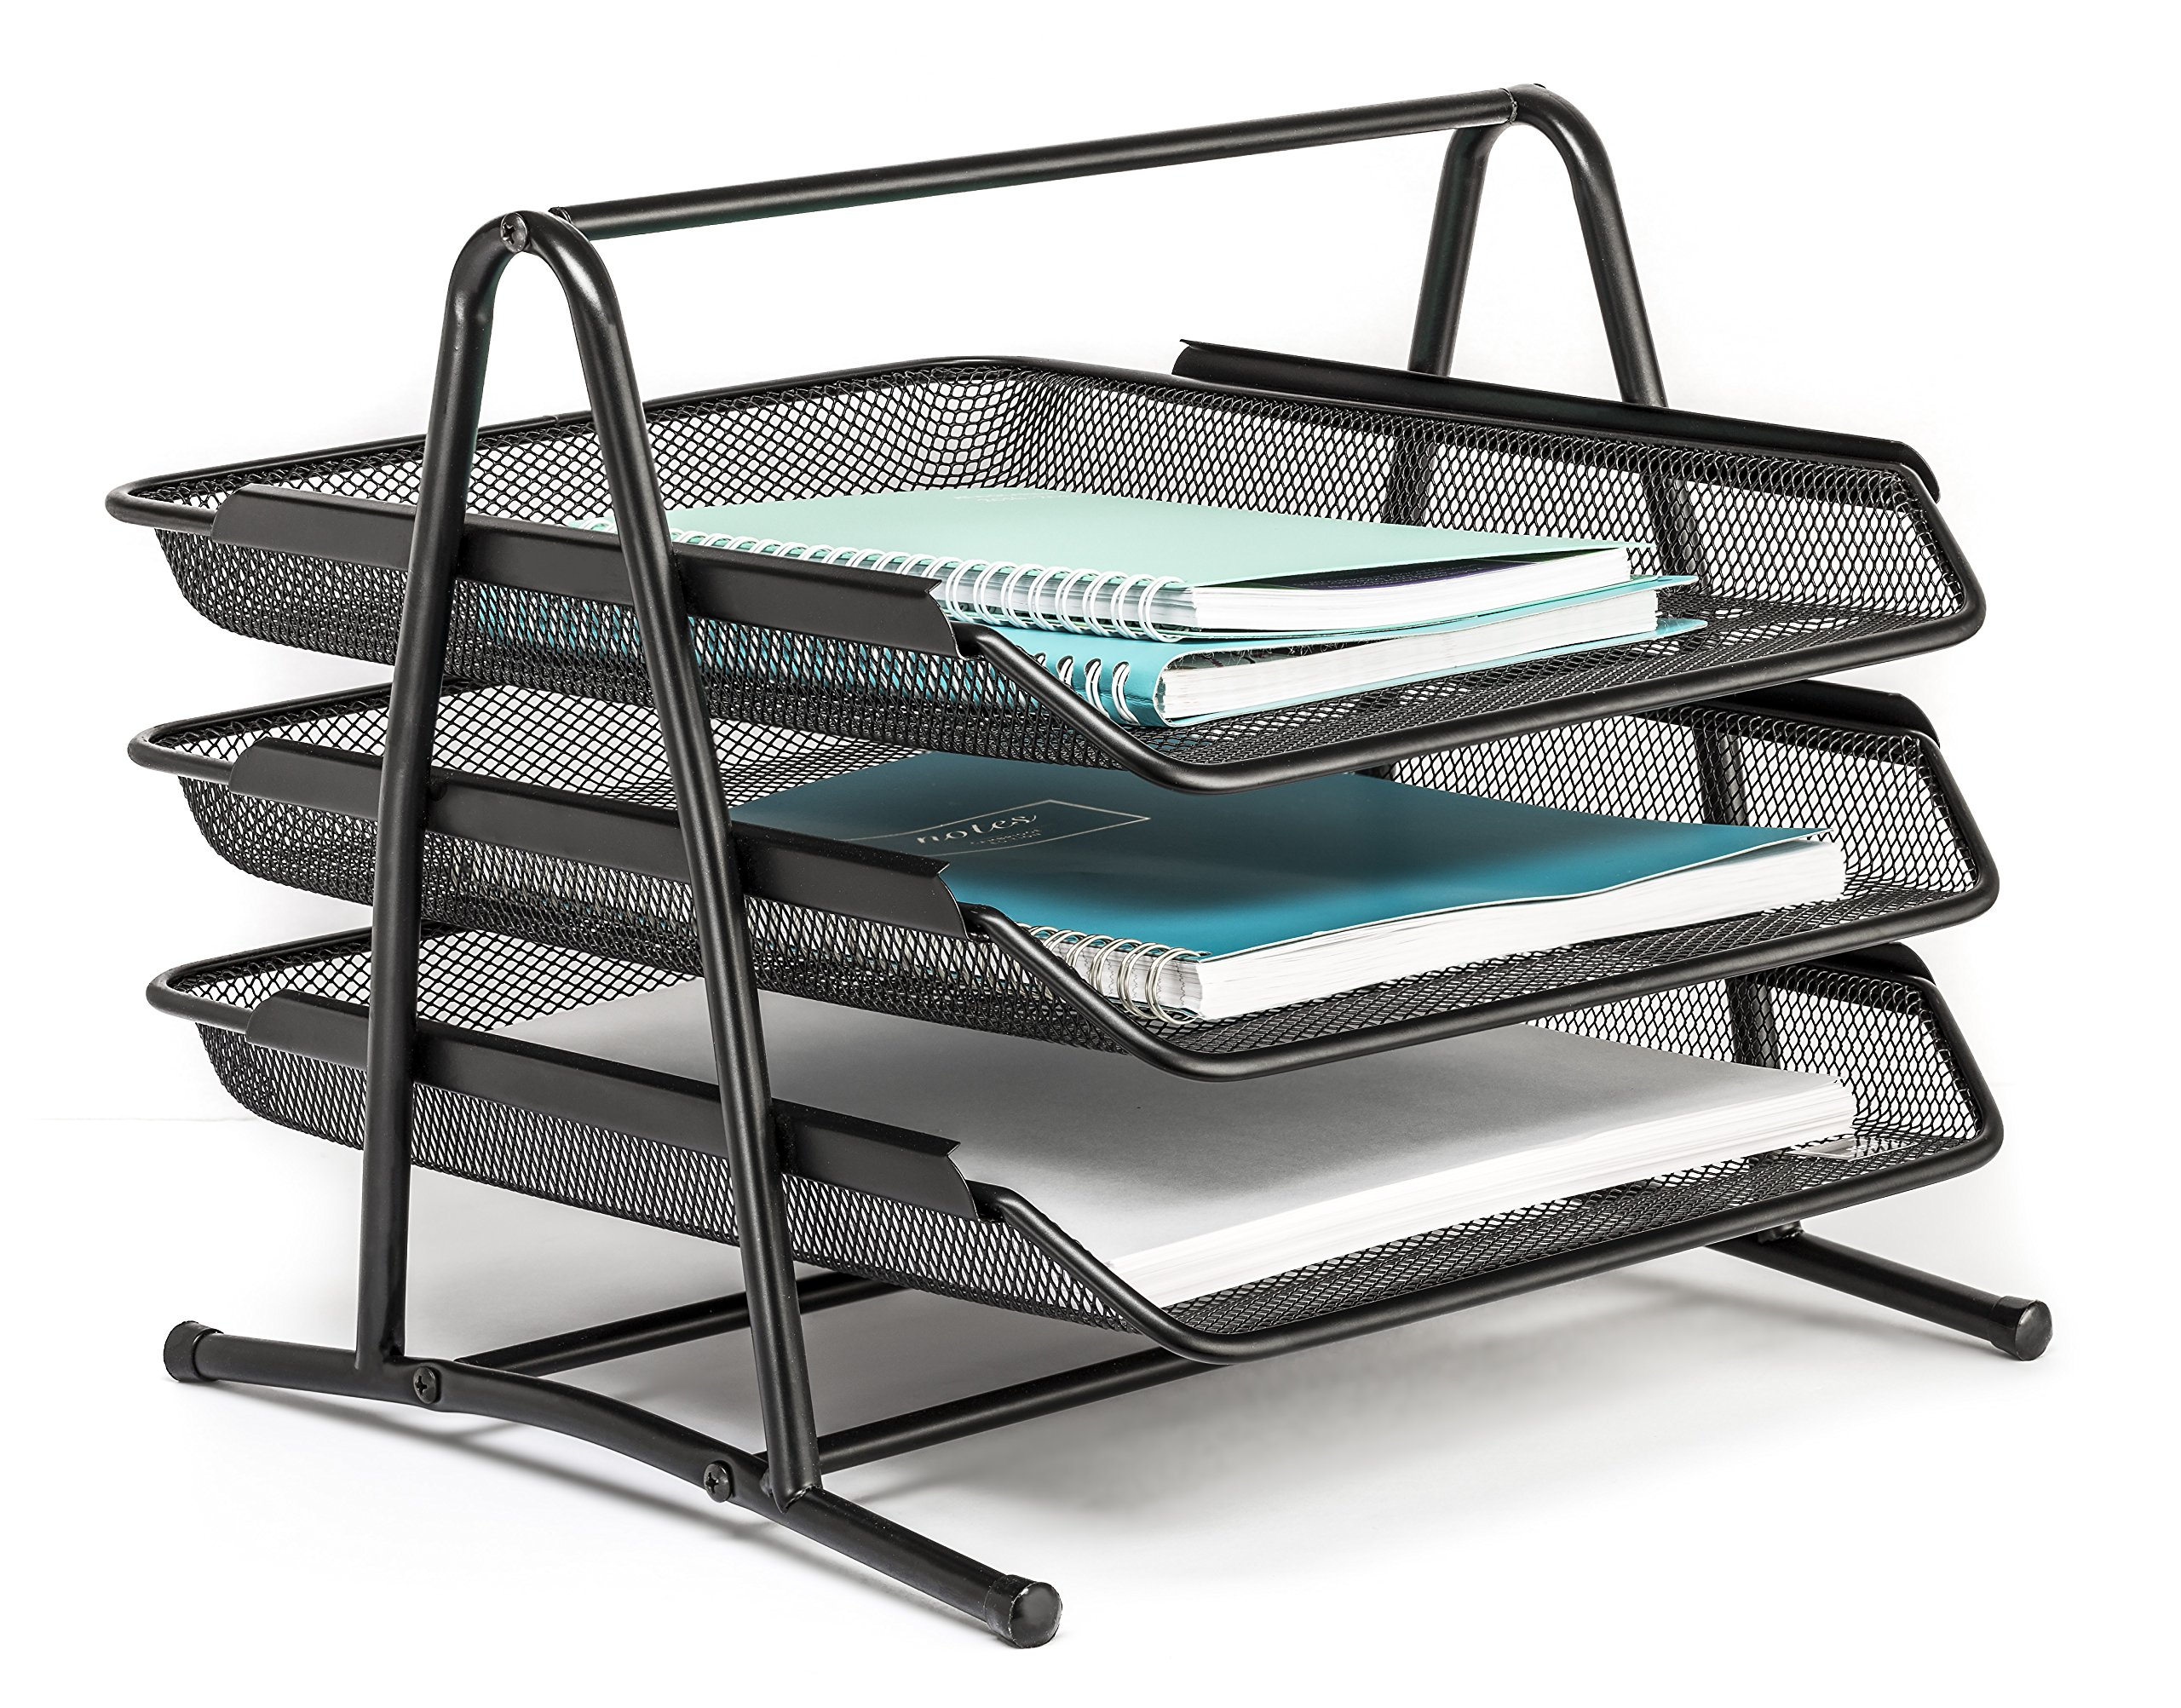 Letter Tray 3 Tier Office Desk Organizer by Mindspace | The Mesh Collection, Black